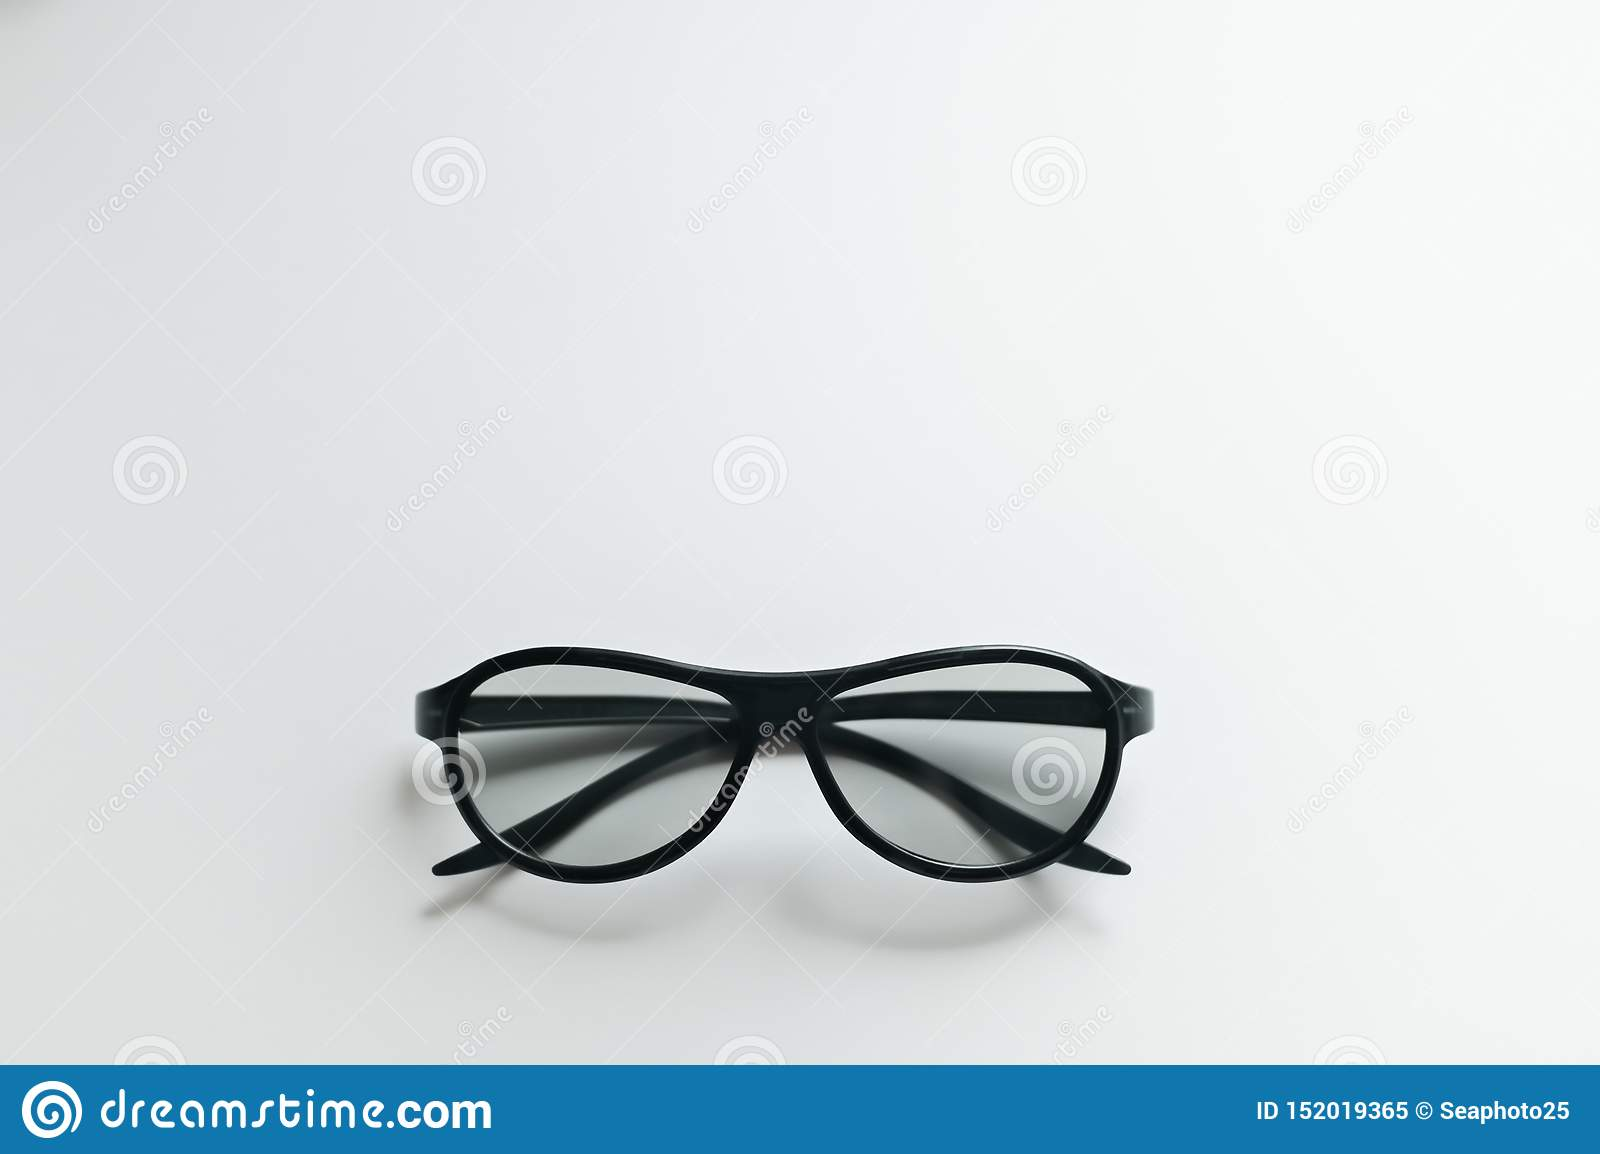 3D cinema glasses on a white background.